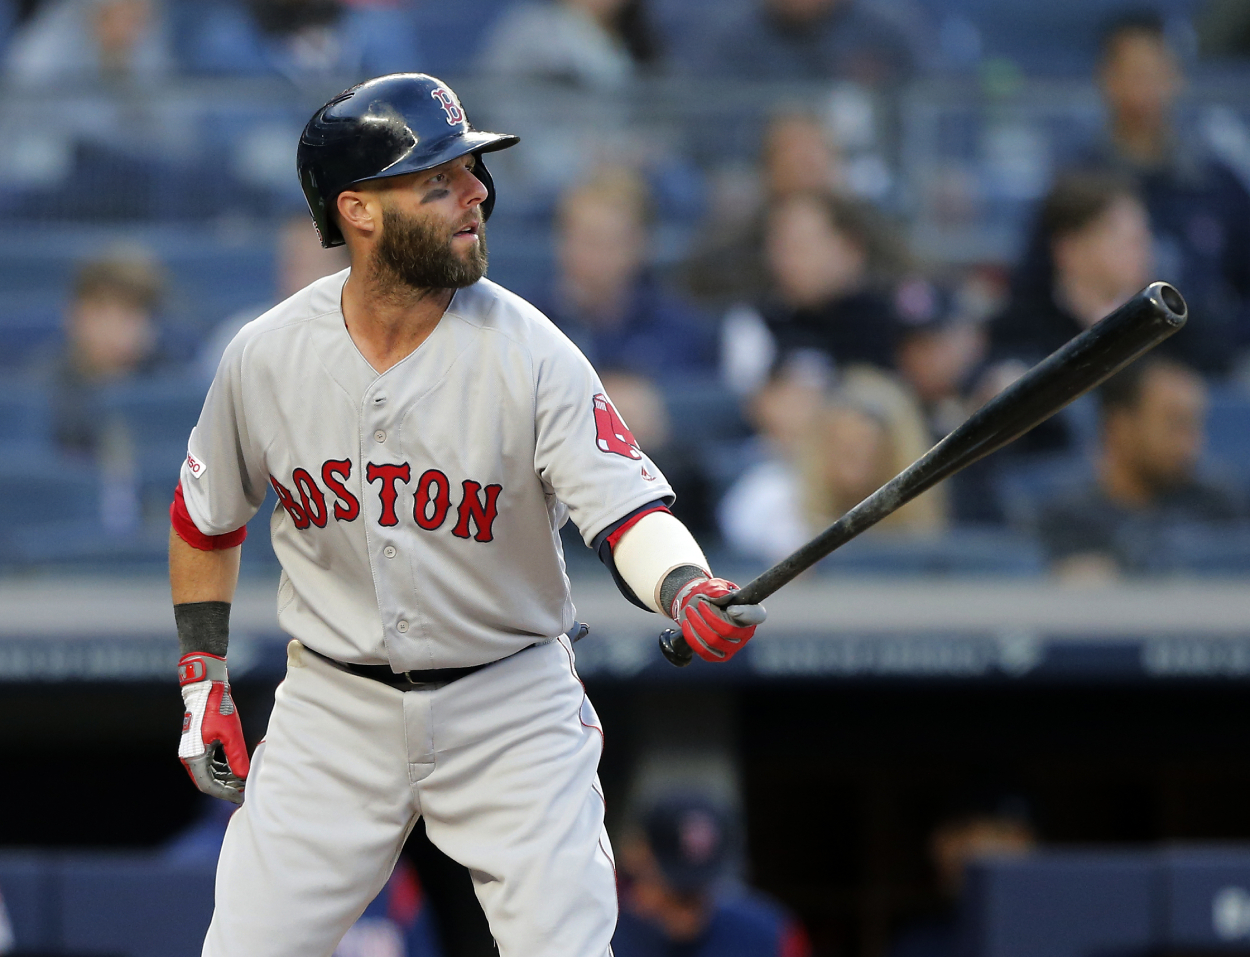 Dustin Pedroia Reveals His Recruiting Tactics and the Only Player He Failed to Bring to the Red Sox